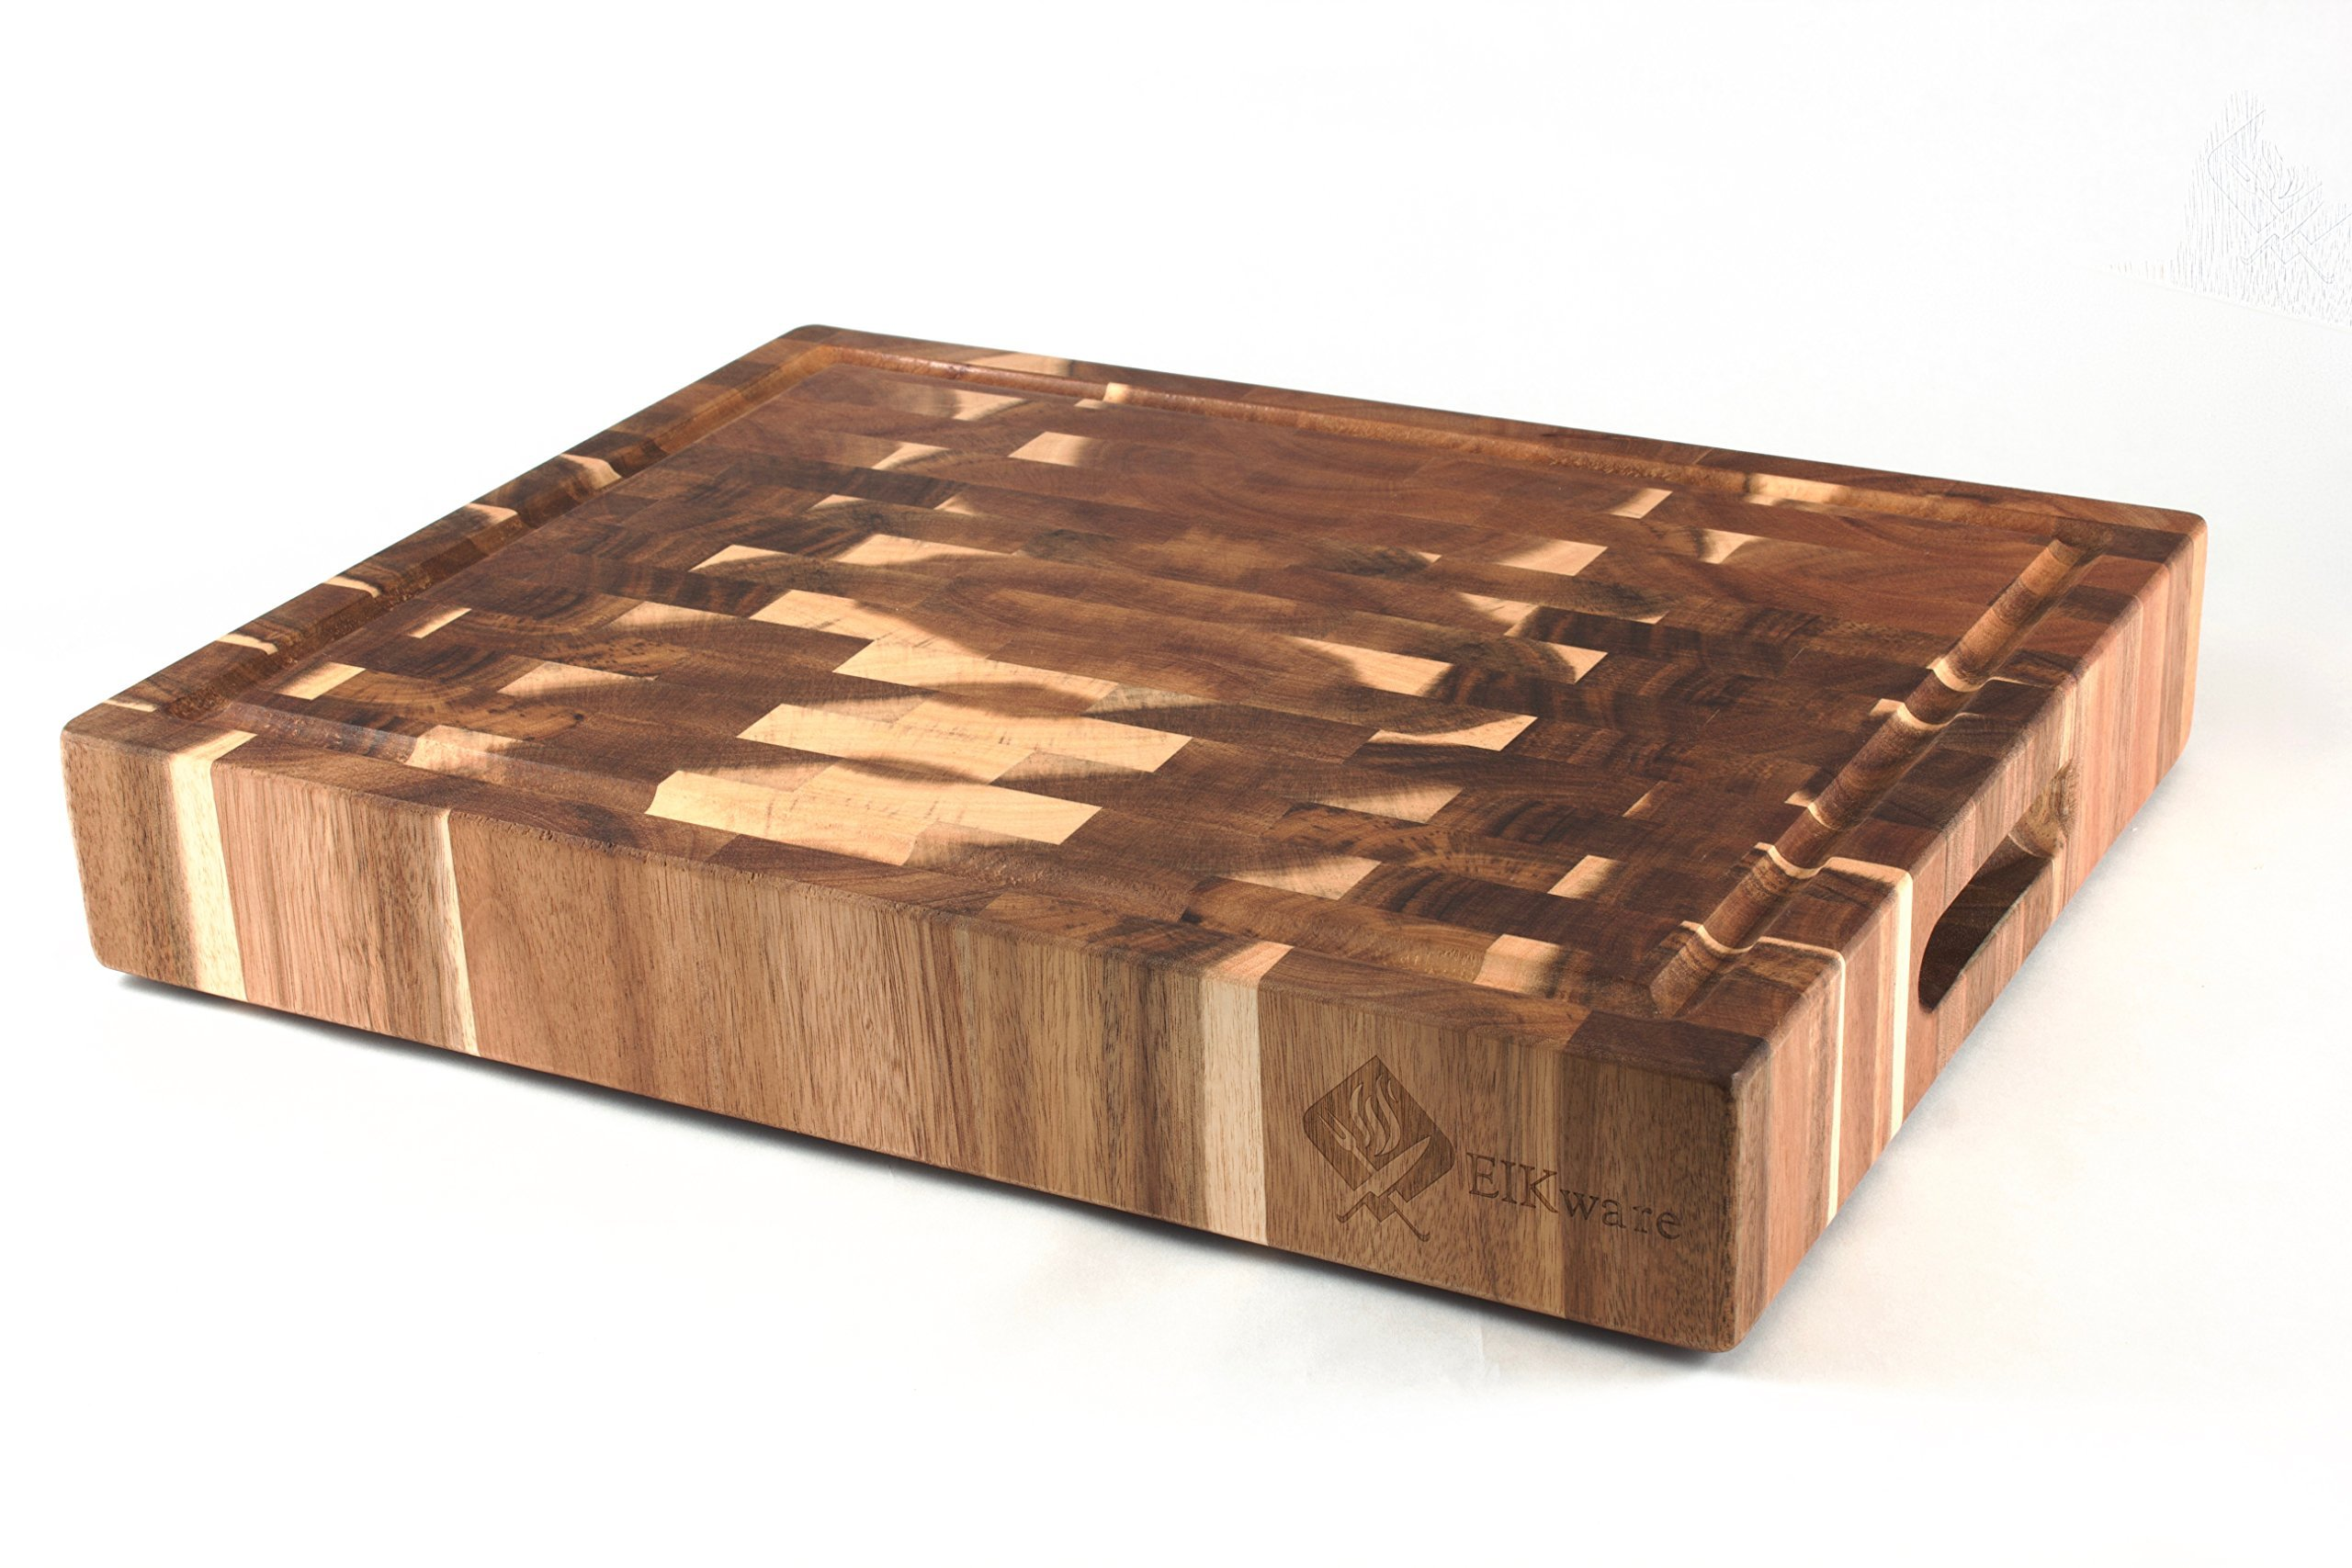 EIKware Large End Grain Cutting Board | Acacia Wood | 15.2 x 11.8 x 2.6 inches | Integrated Juice Groove and Carrying Handles | Non Slip Rubber Feet